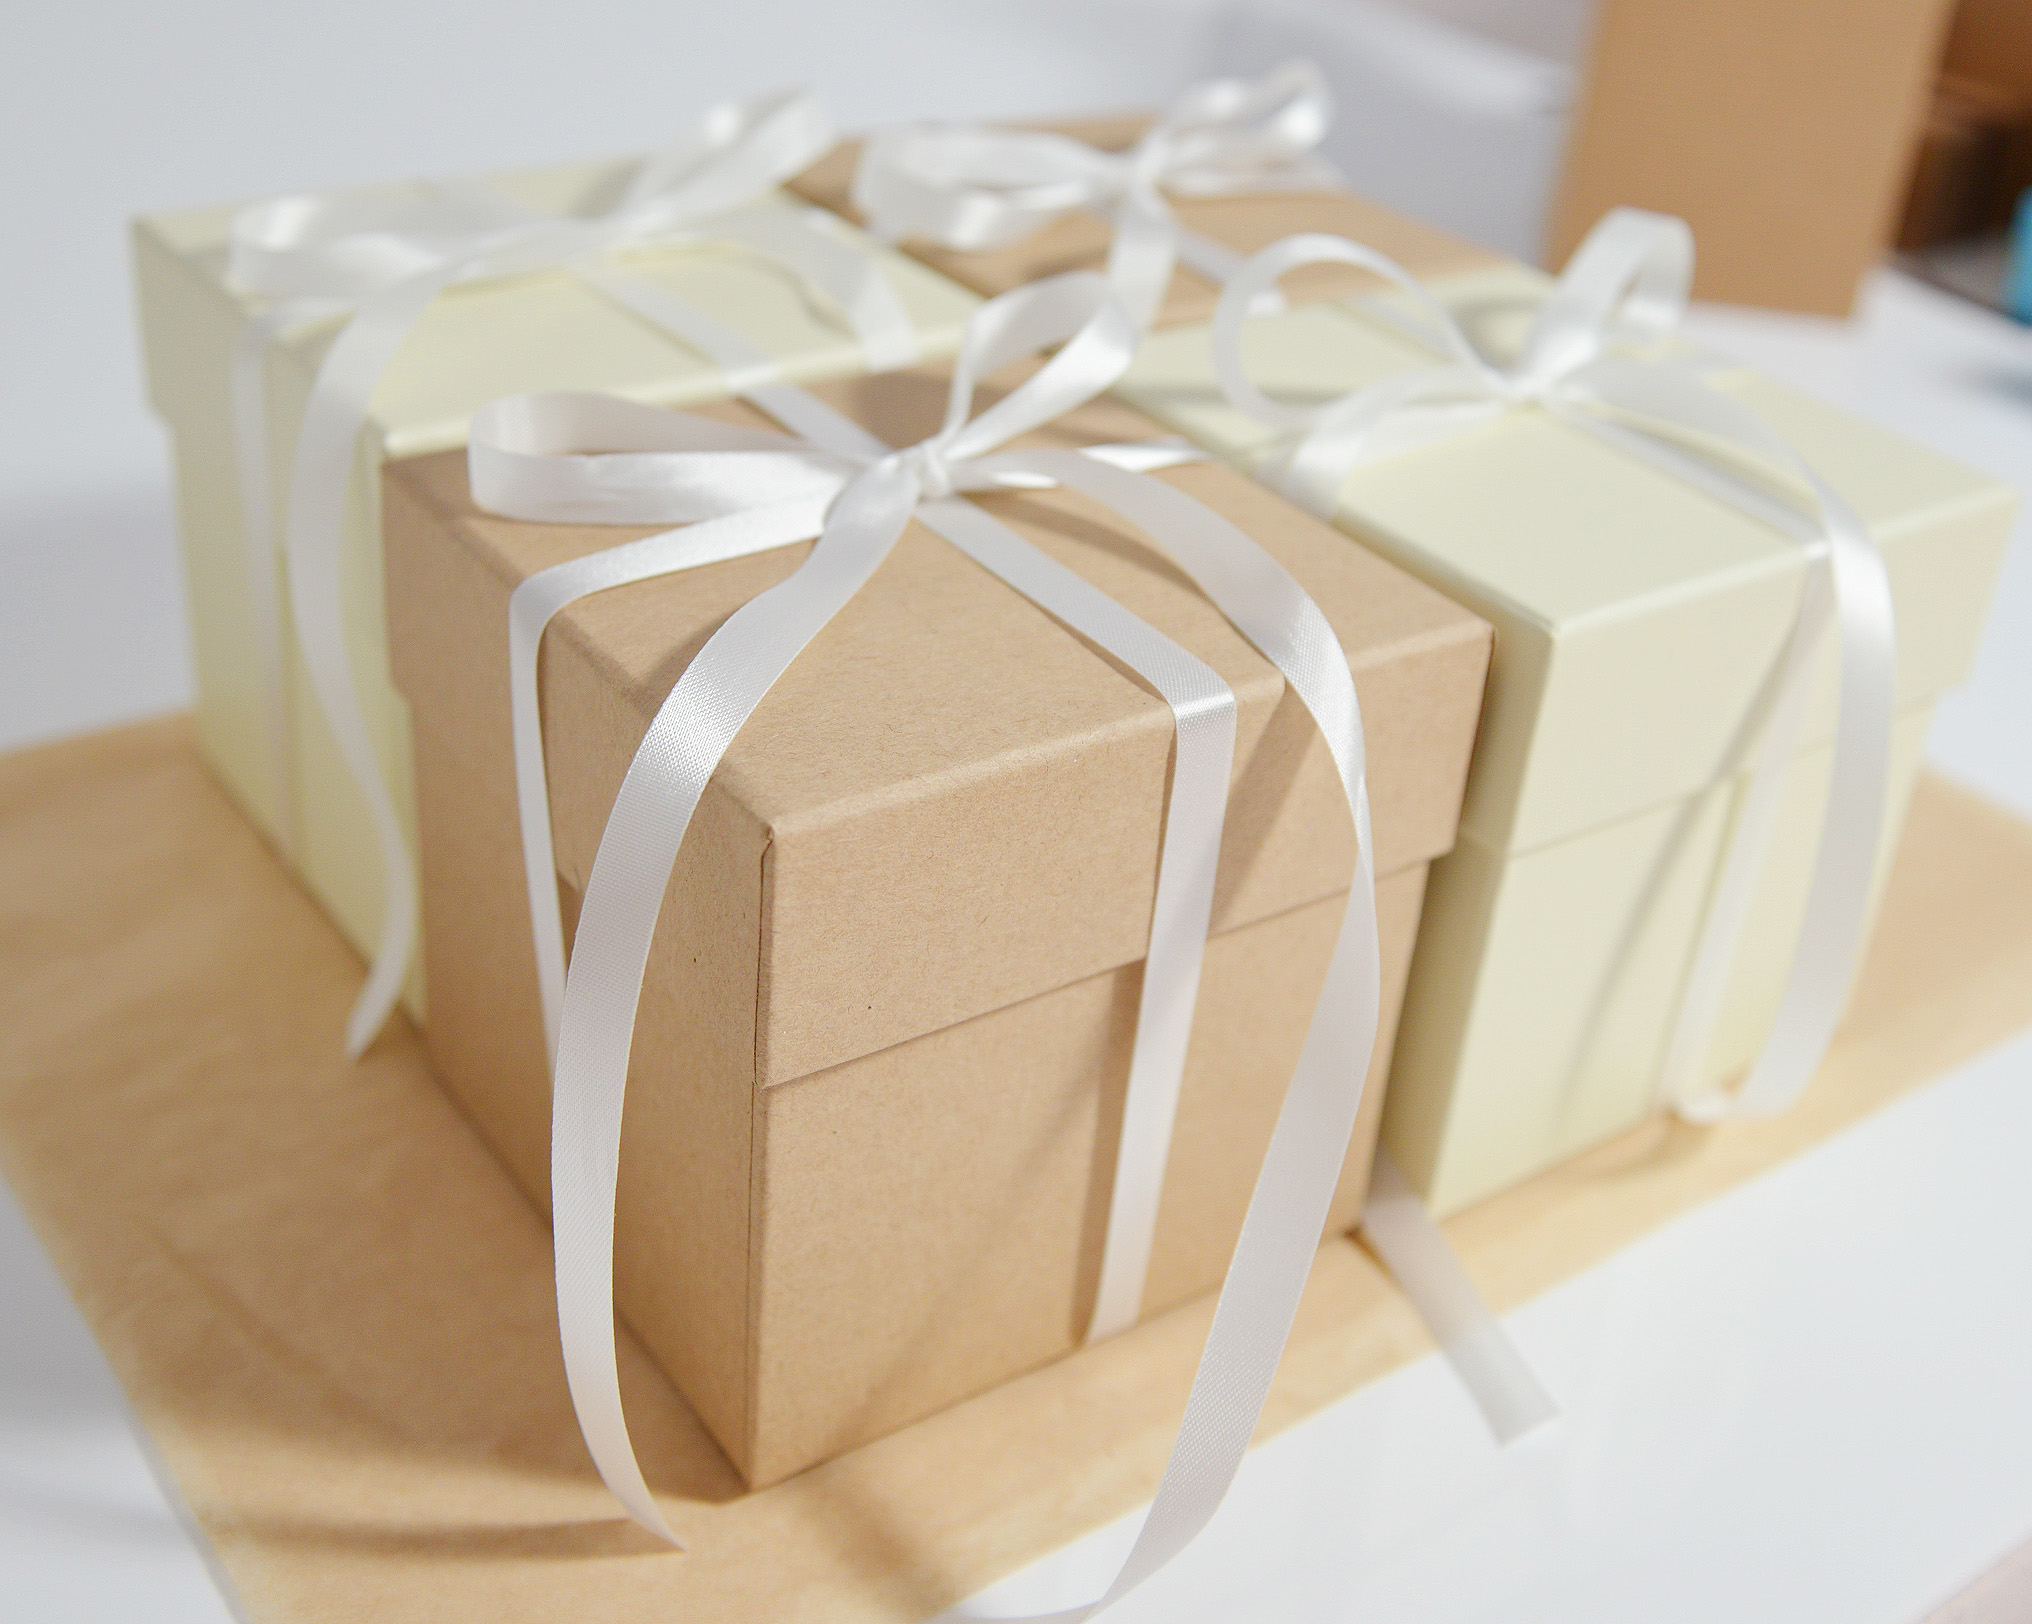 5 Great Gift Ideas for Mum This Christmas